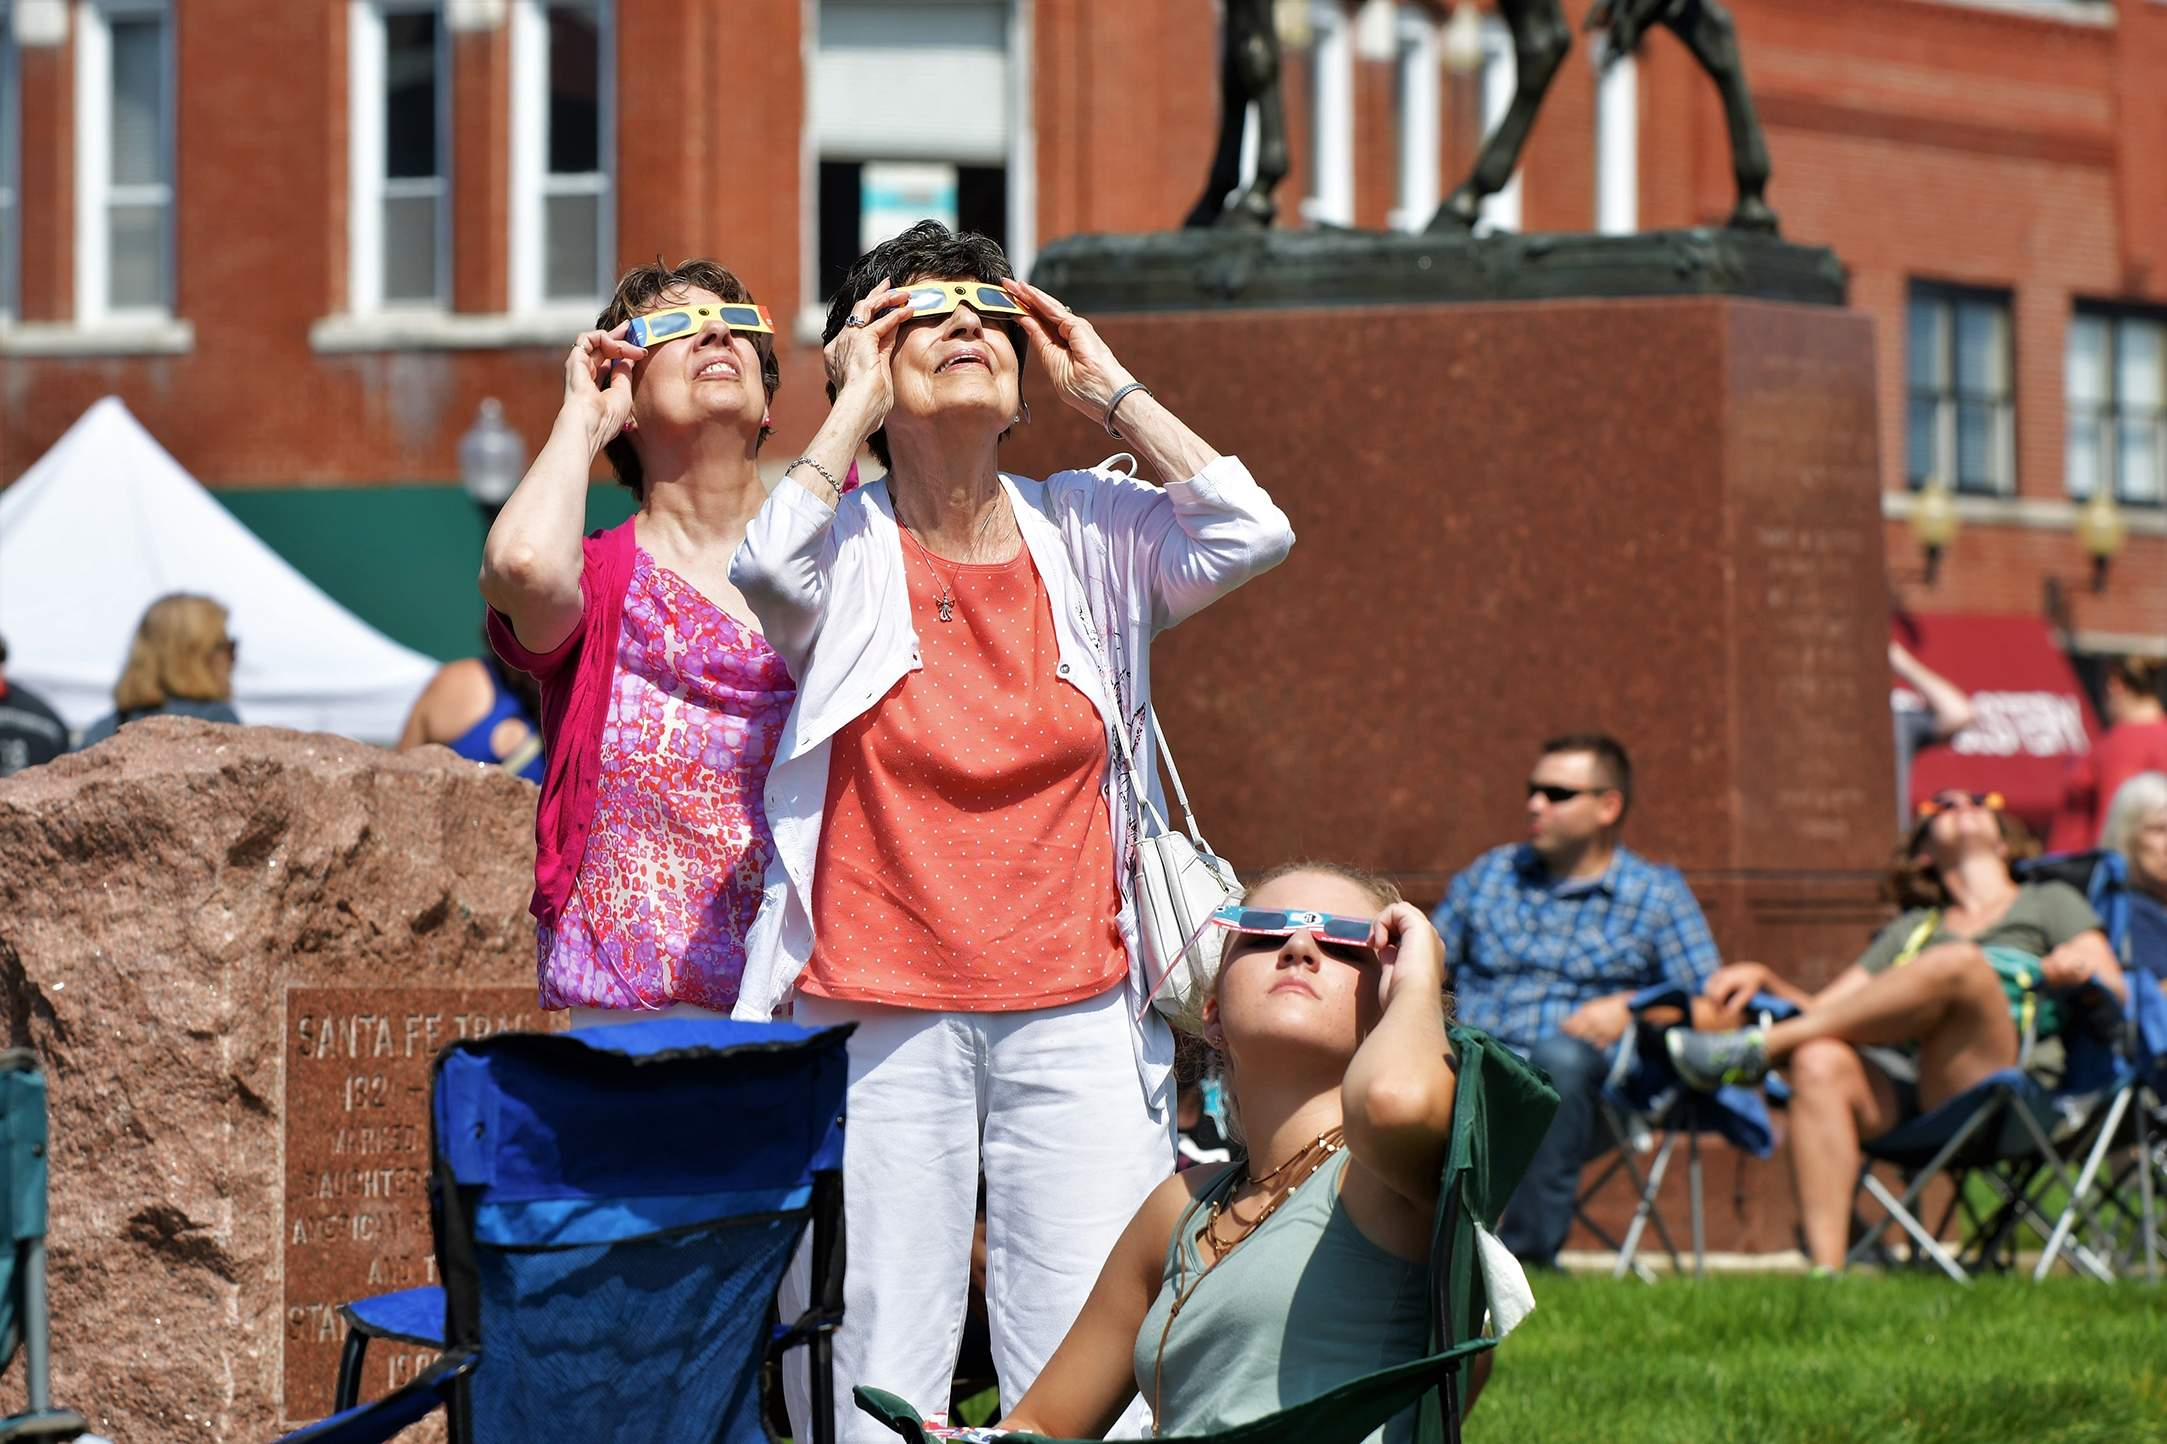 Spectators at the Independence Square view the start of the partial eclipse. [David M. Rainey/Special to The Examiner]